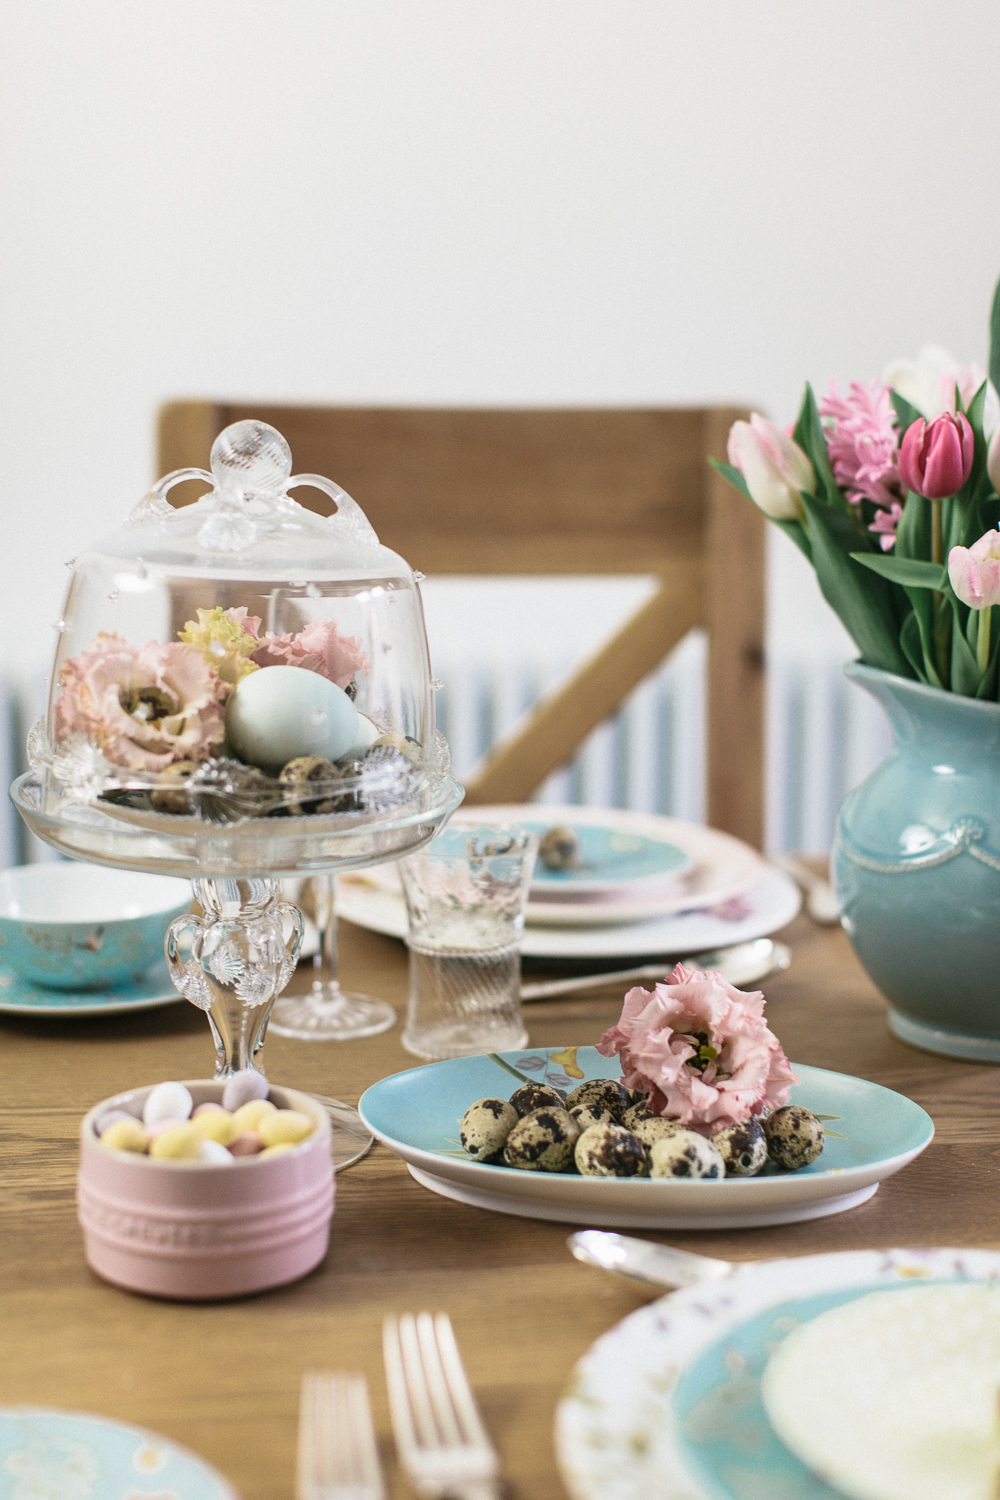 Styling Your Easter Table {With The Wedding Shop} - ROCK ...